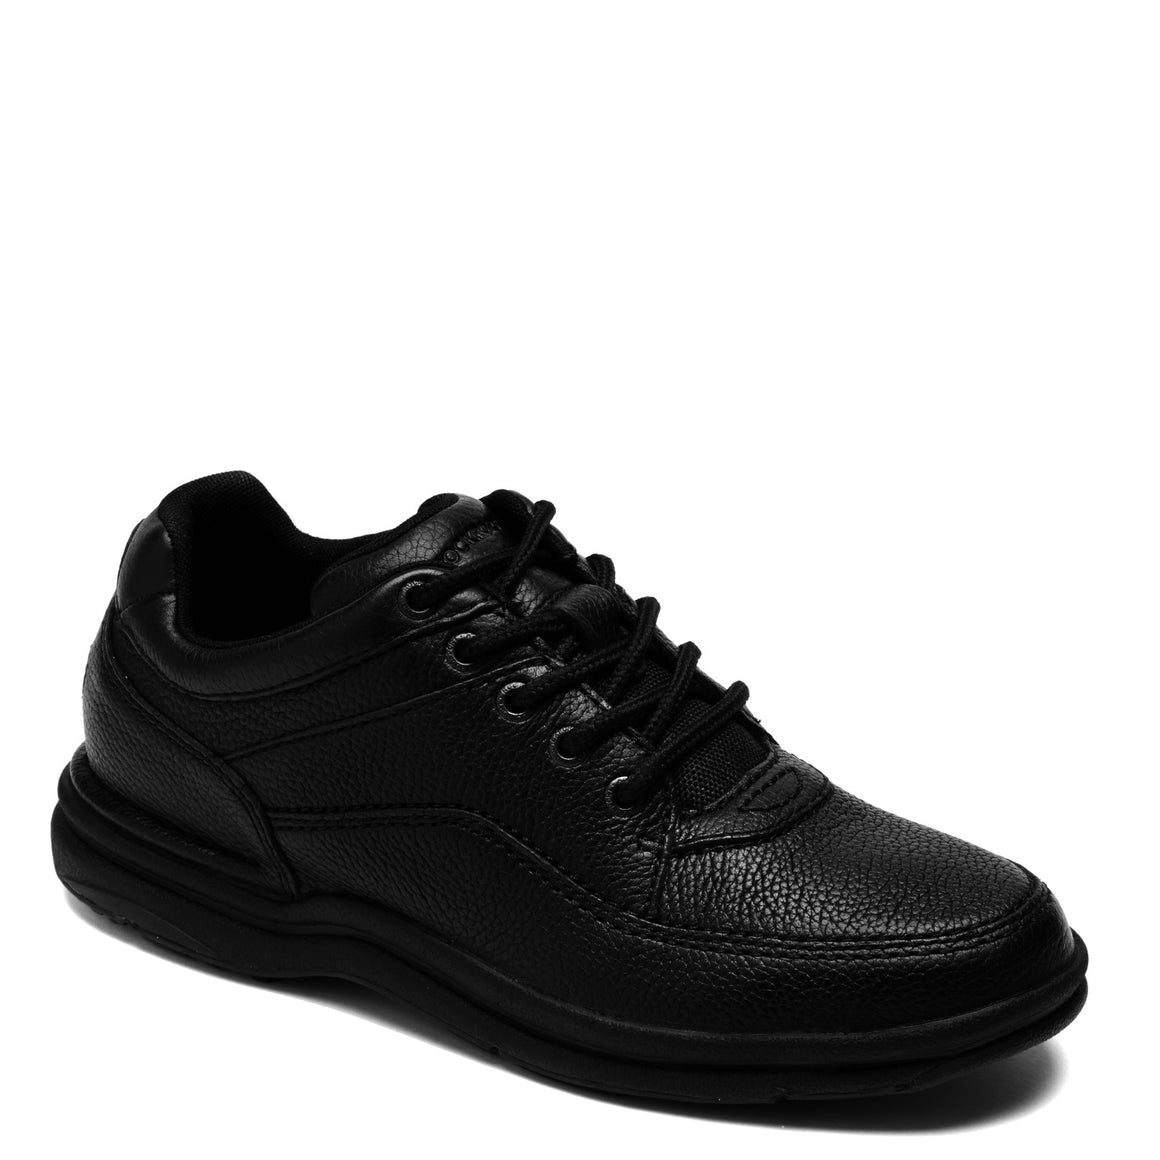 Rockport Men's World Tour Classic Walking Shoe - Black K71185 - ShoeShackOnline